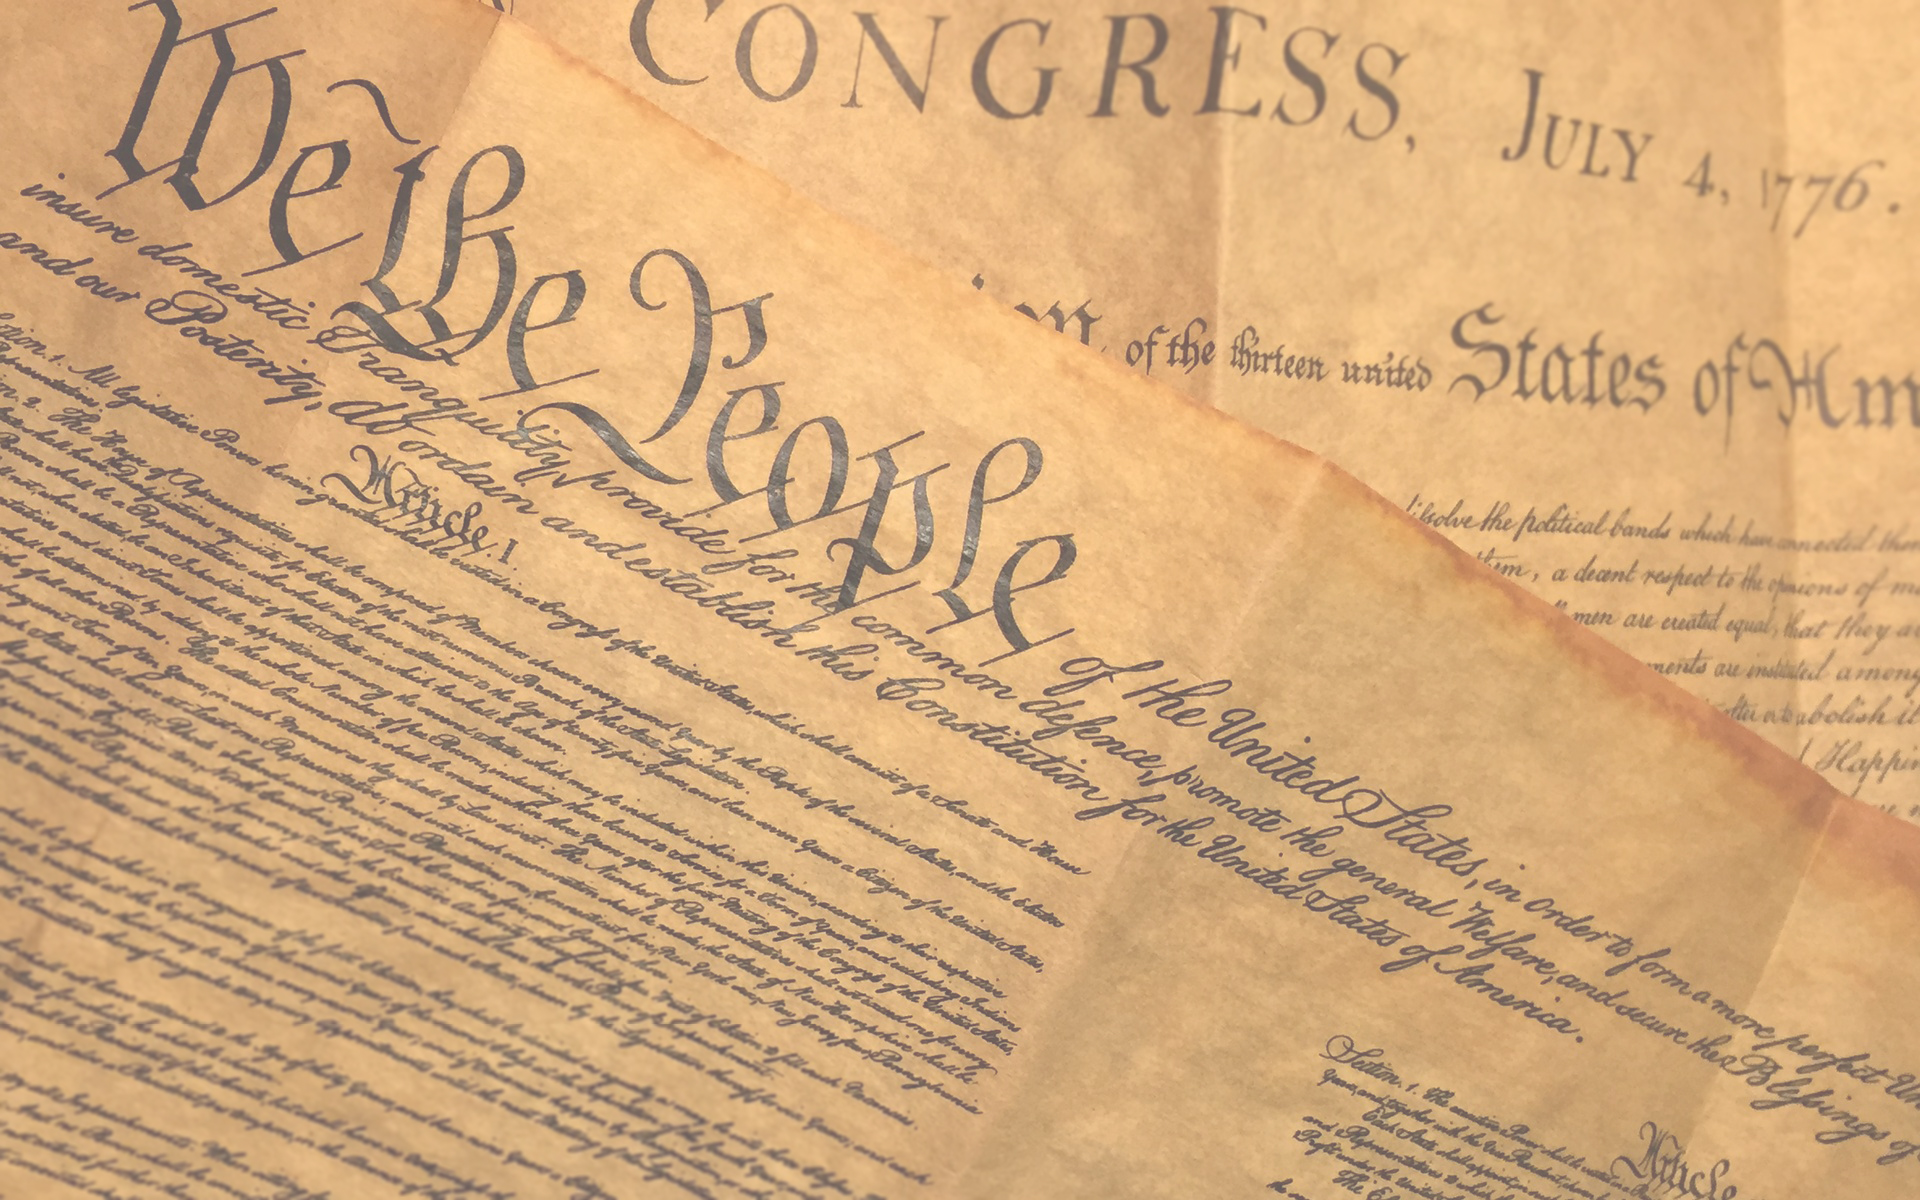 The United States Cons Utions 14th Amendment Grants Citizenship To Those That Are Born On U S Soil P O By Lynn Melchiori Creative Commons